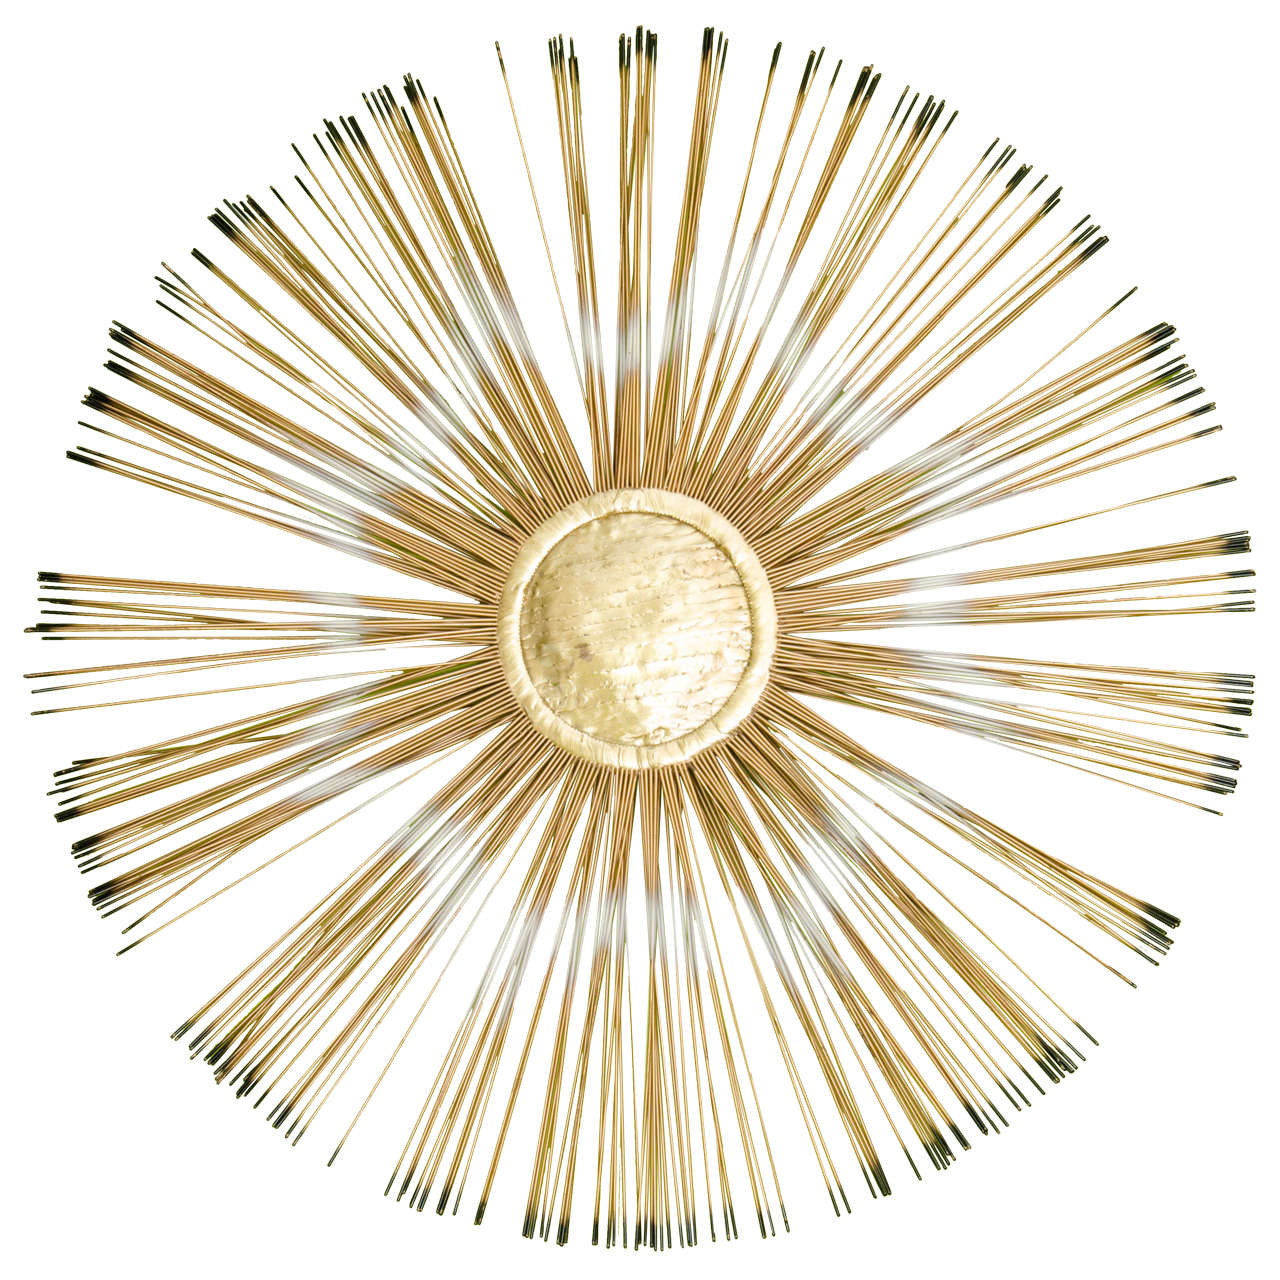 Midcentury Sunburst Wall-Mounted Sculpture Inspired by Curtis Jere ...